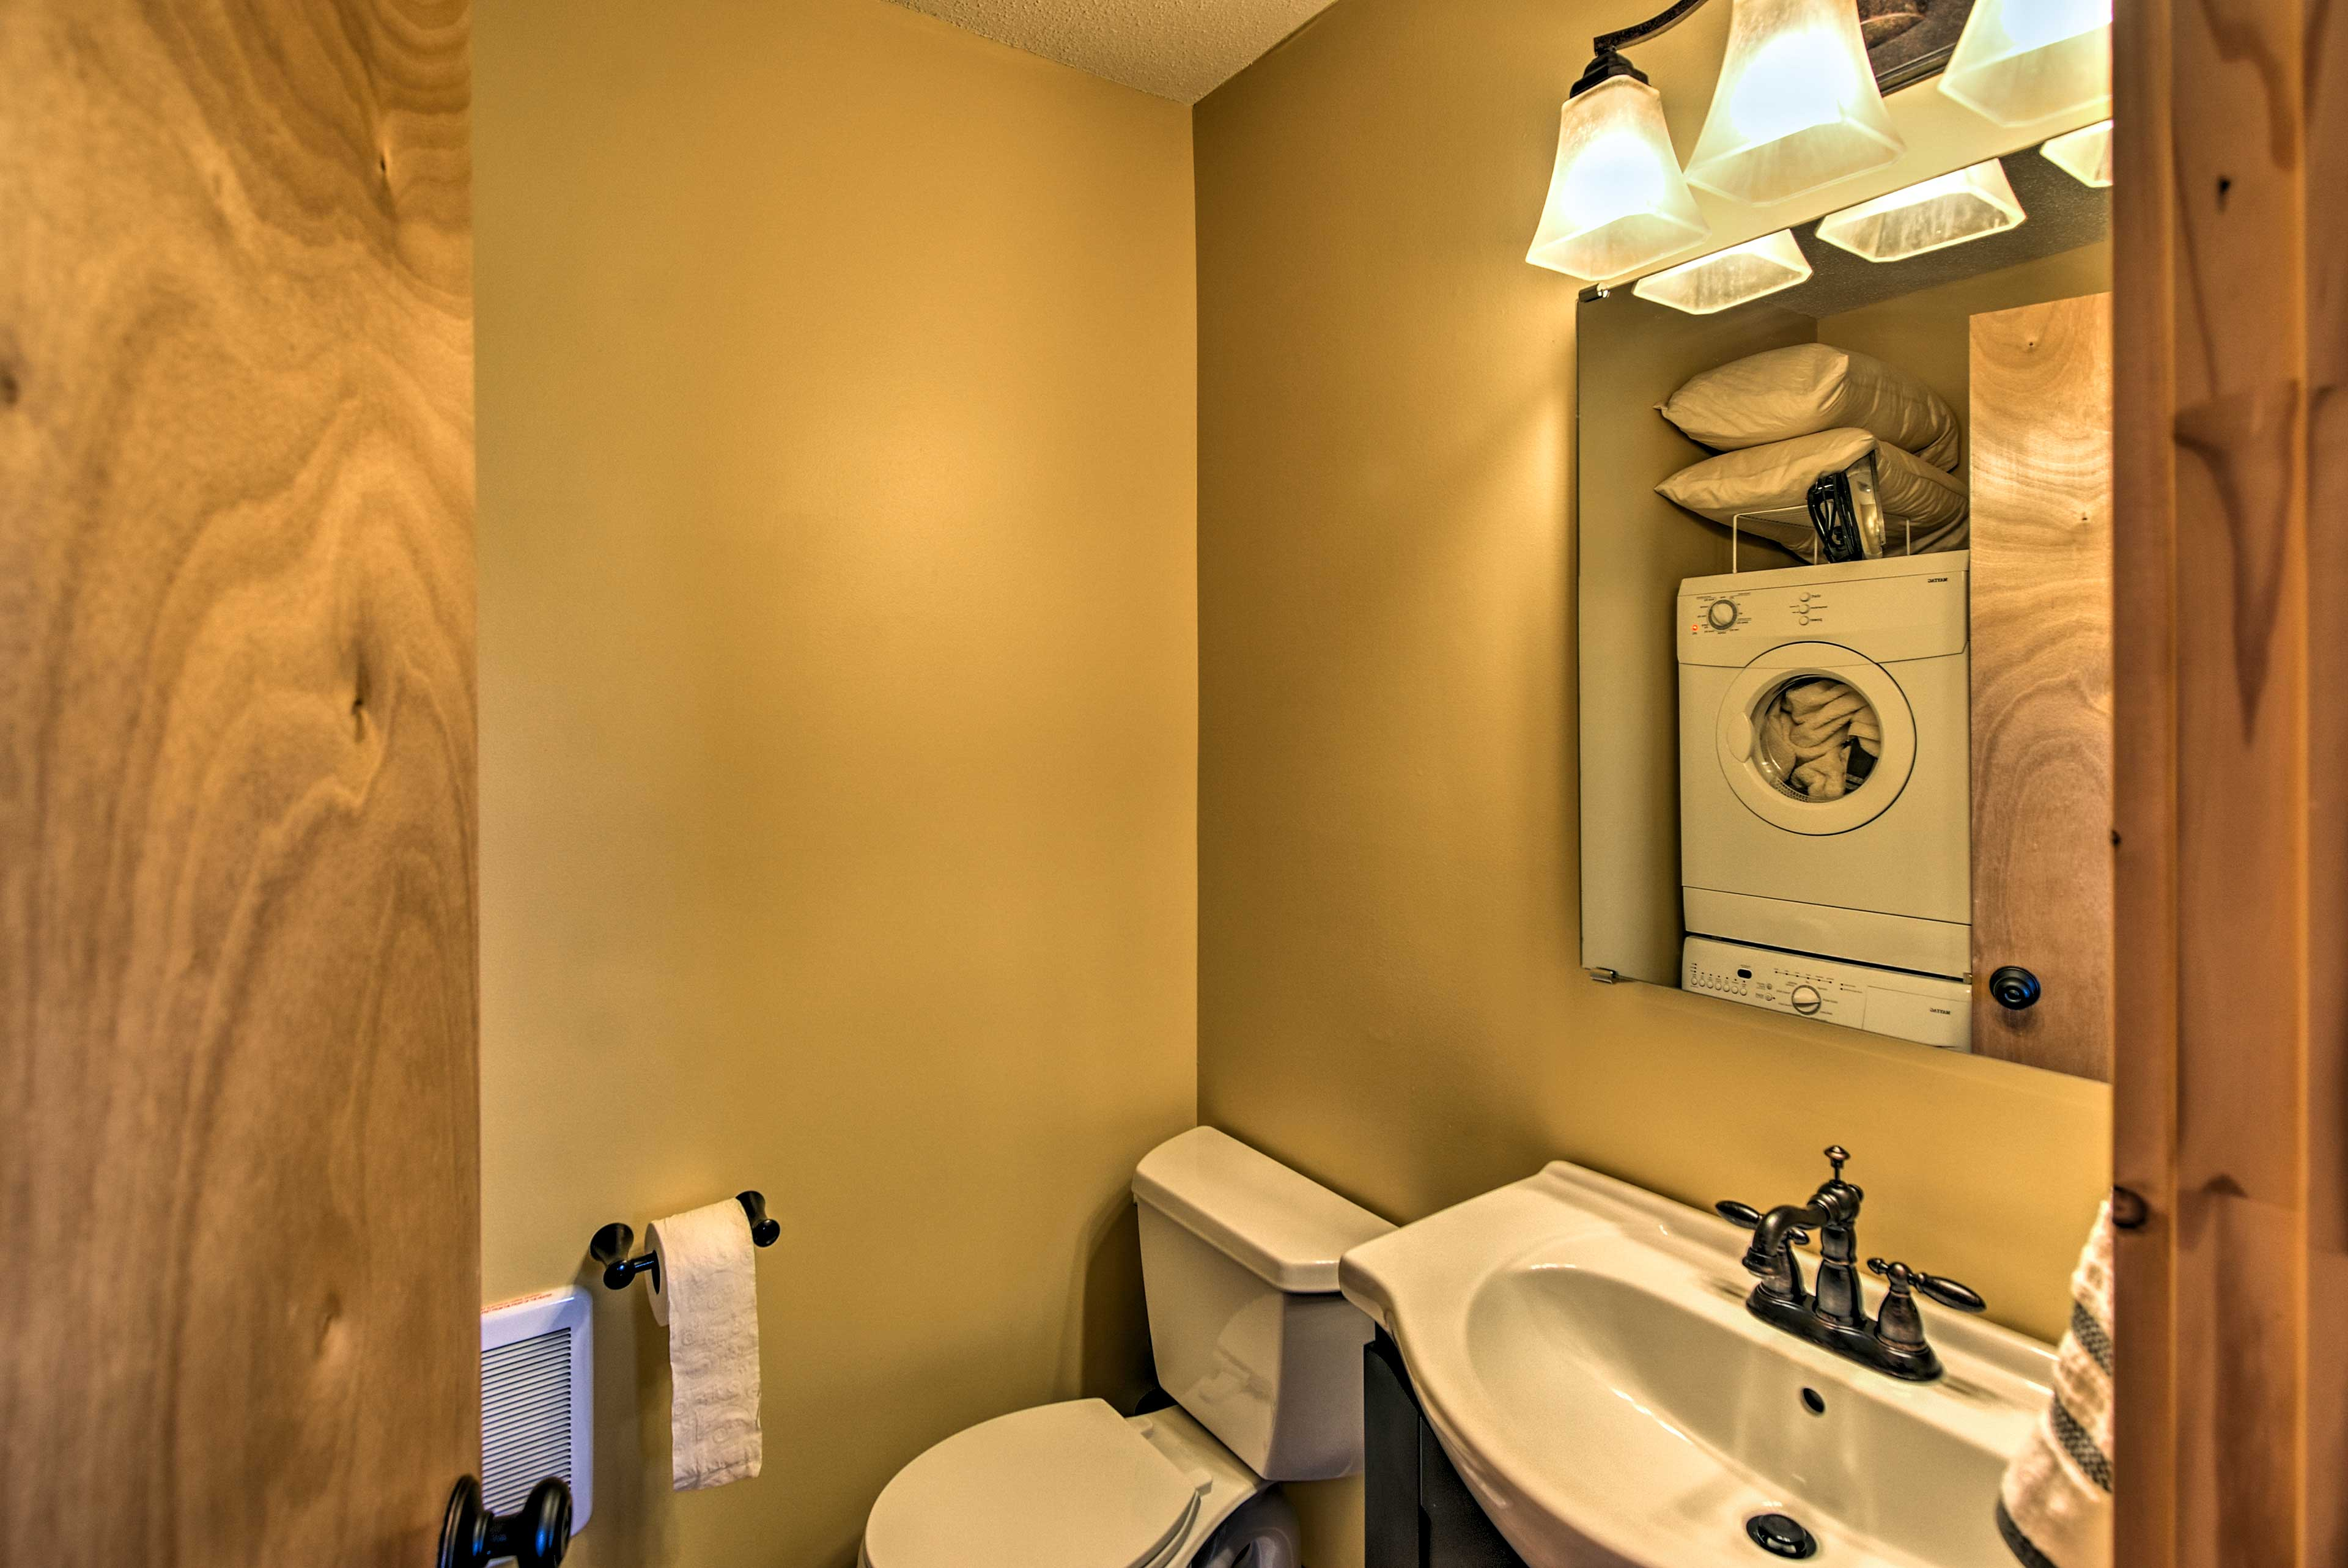 The washer and dryer is located in the half bathroom.